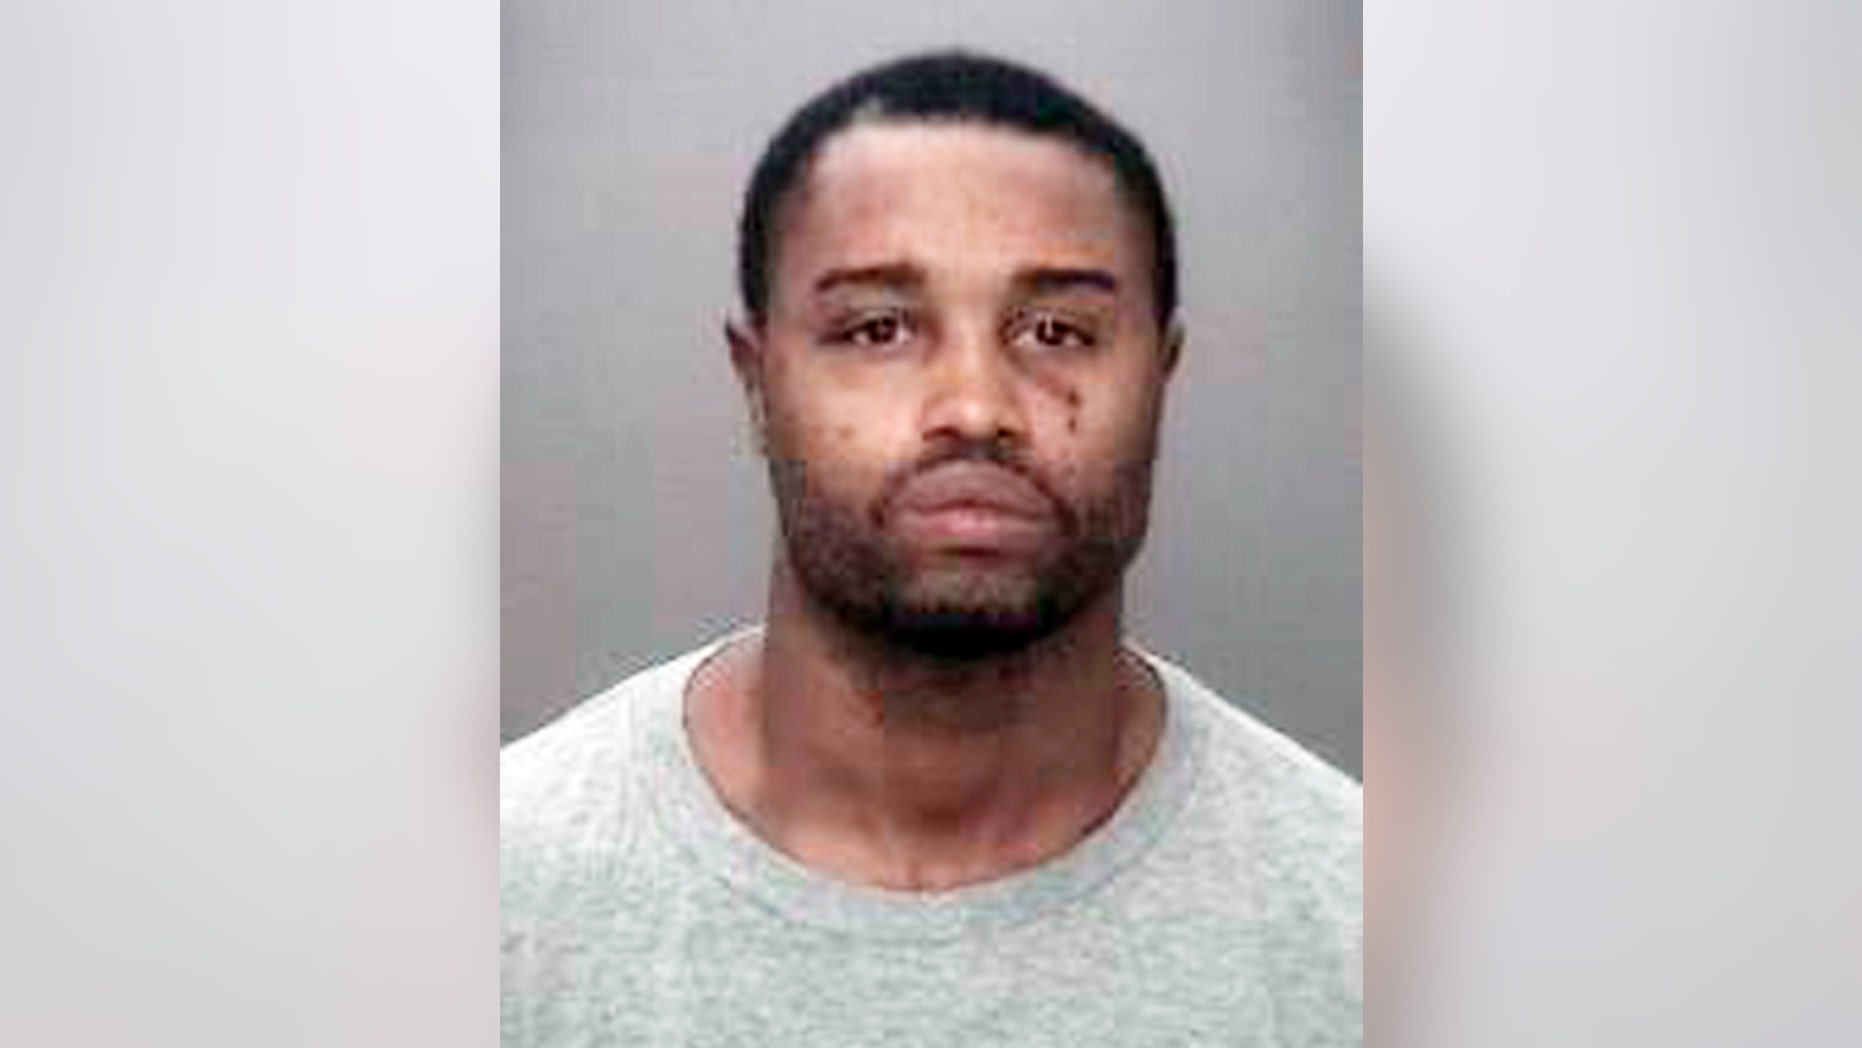 This undated photo provided by Robeson County Sheriff's Office shows Michael Ray McLellan.  A statement issued by the FBI says McLellan has been charged in connection with the kidnapping and murder of 13-year-old Hania Noelia Aguilar. The 34-year-old McLellan faces first degree murder and other charges. He is being held without bond in the Robeson County Detention Center. He will appear in court at the Robeson County Courthouse on Monday, Dec. 10, 2018. (Robeson County Sheriff's Office via AP)